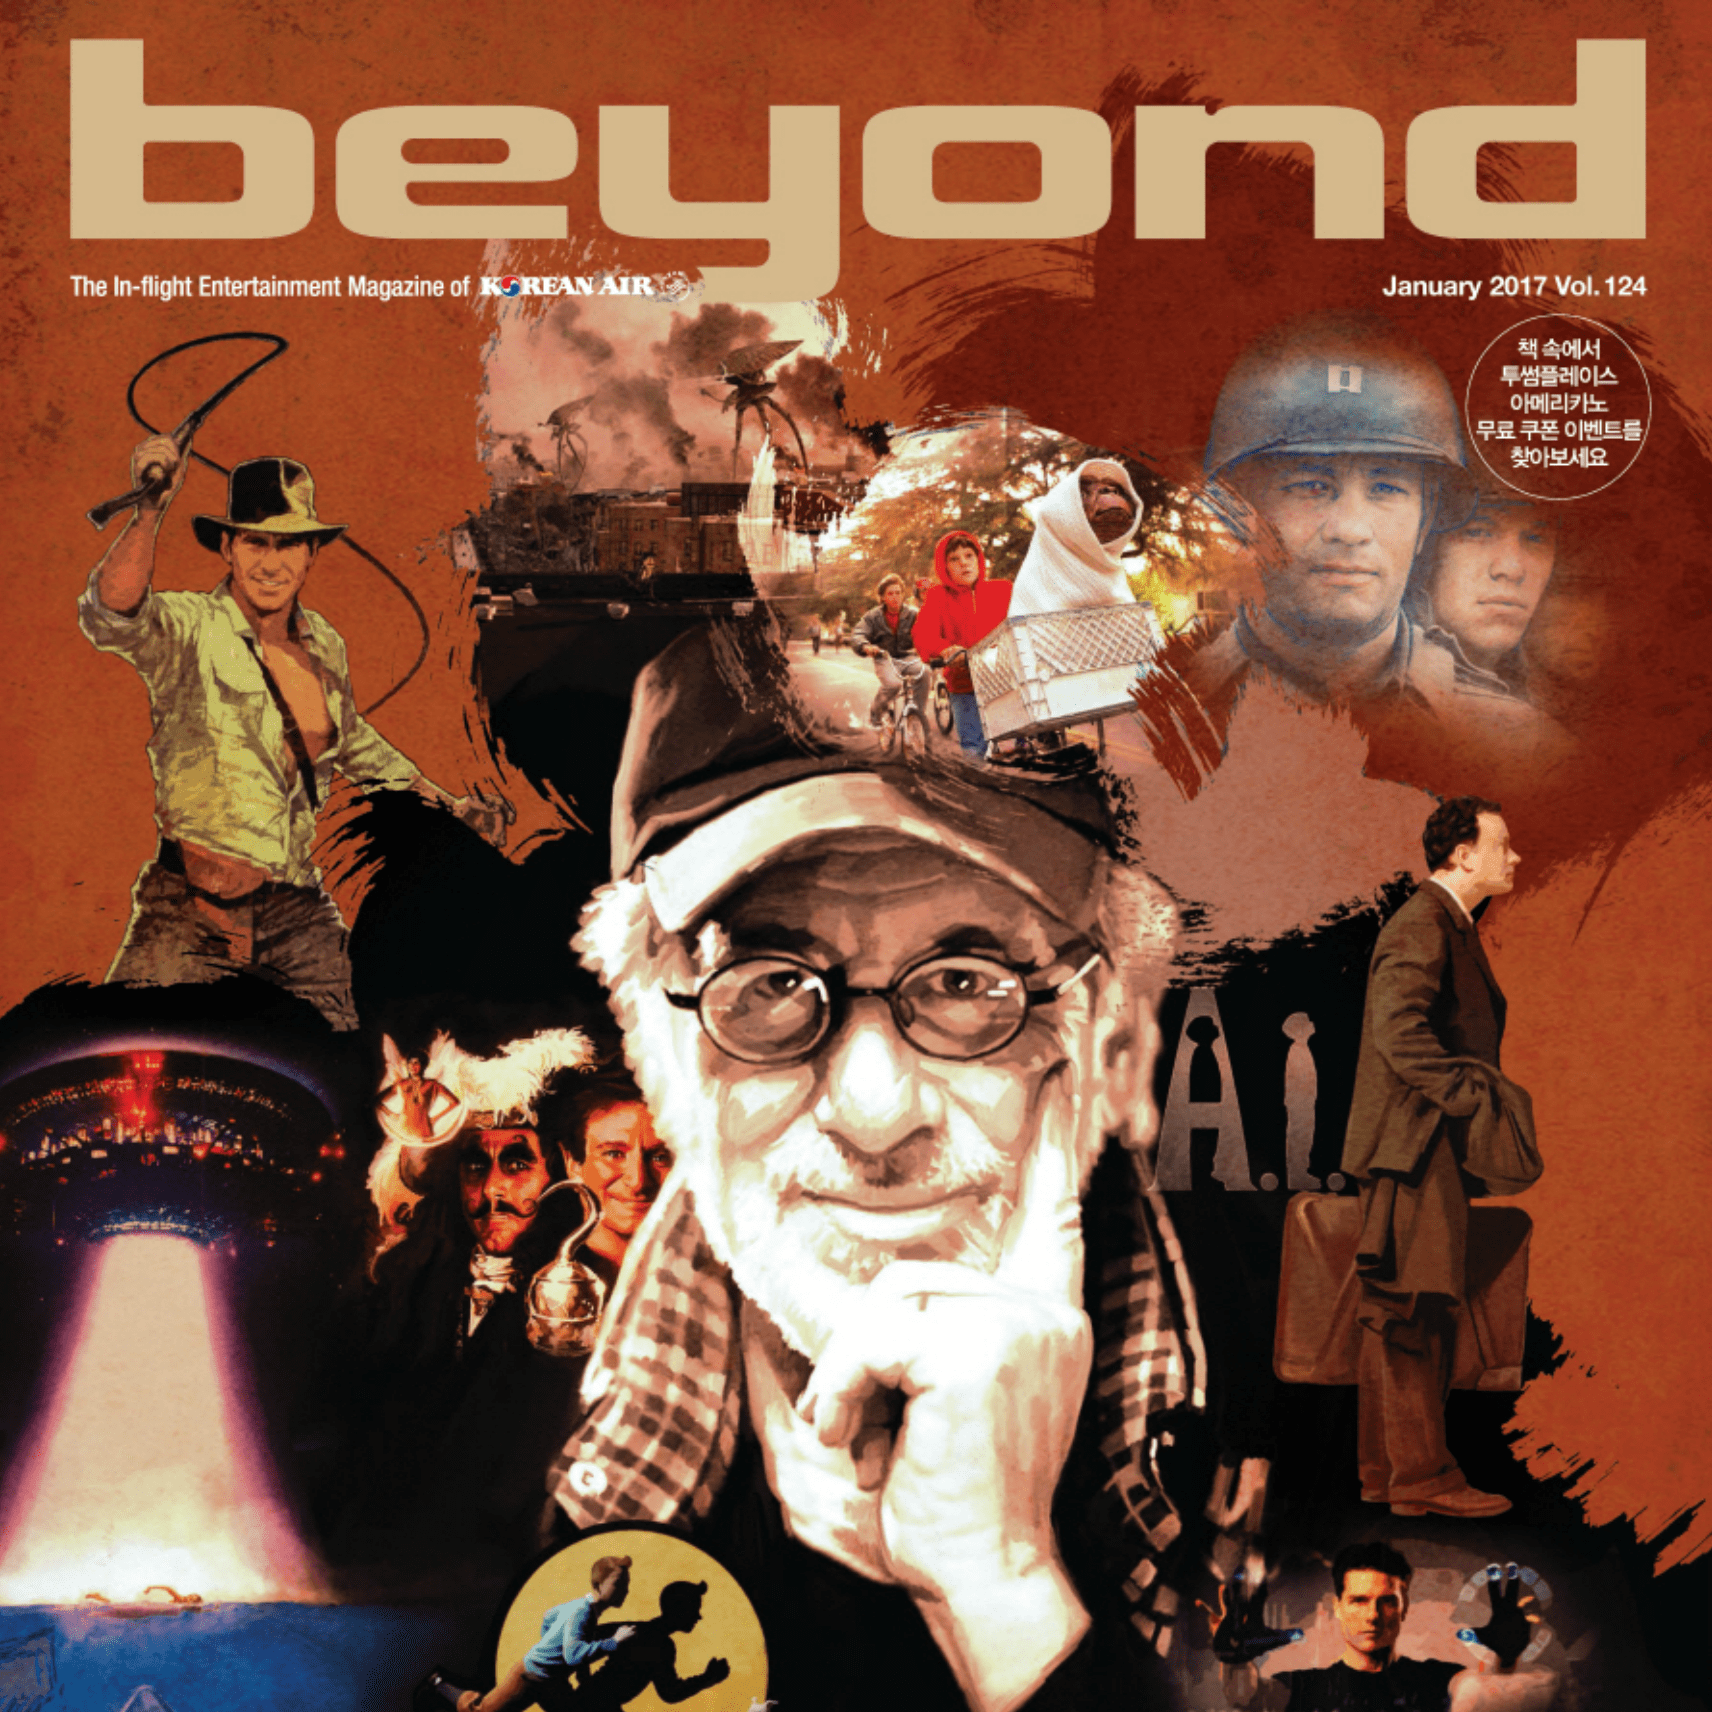 Beyond Vol. 124 - January 2017 - 116 pages